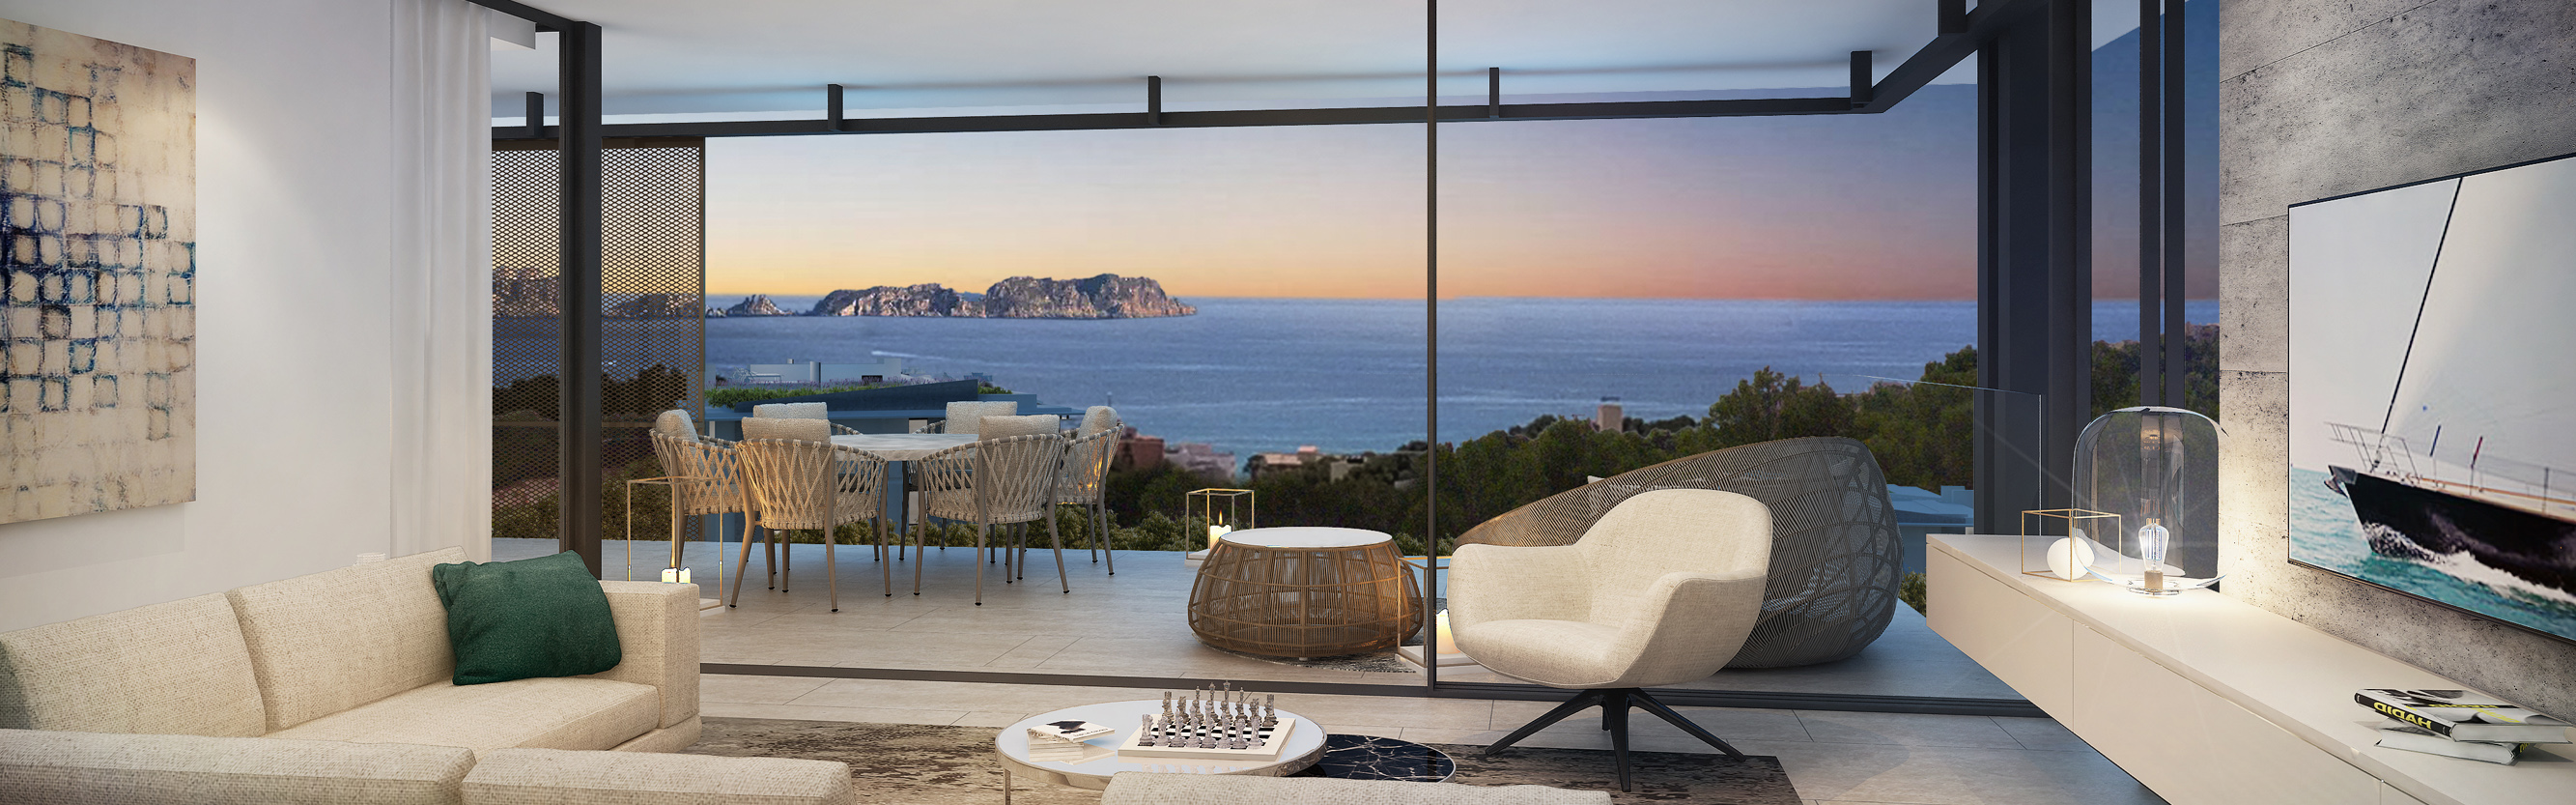 Balearen, Spanien - Sa Puntassa - Apartment Project in Mallorca's Southwest